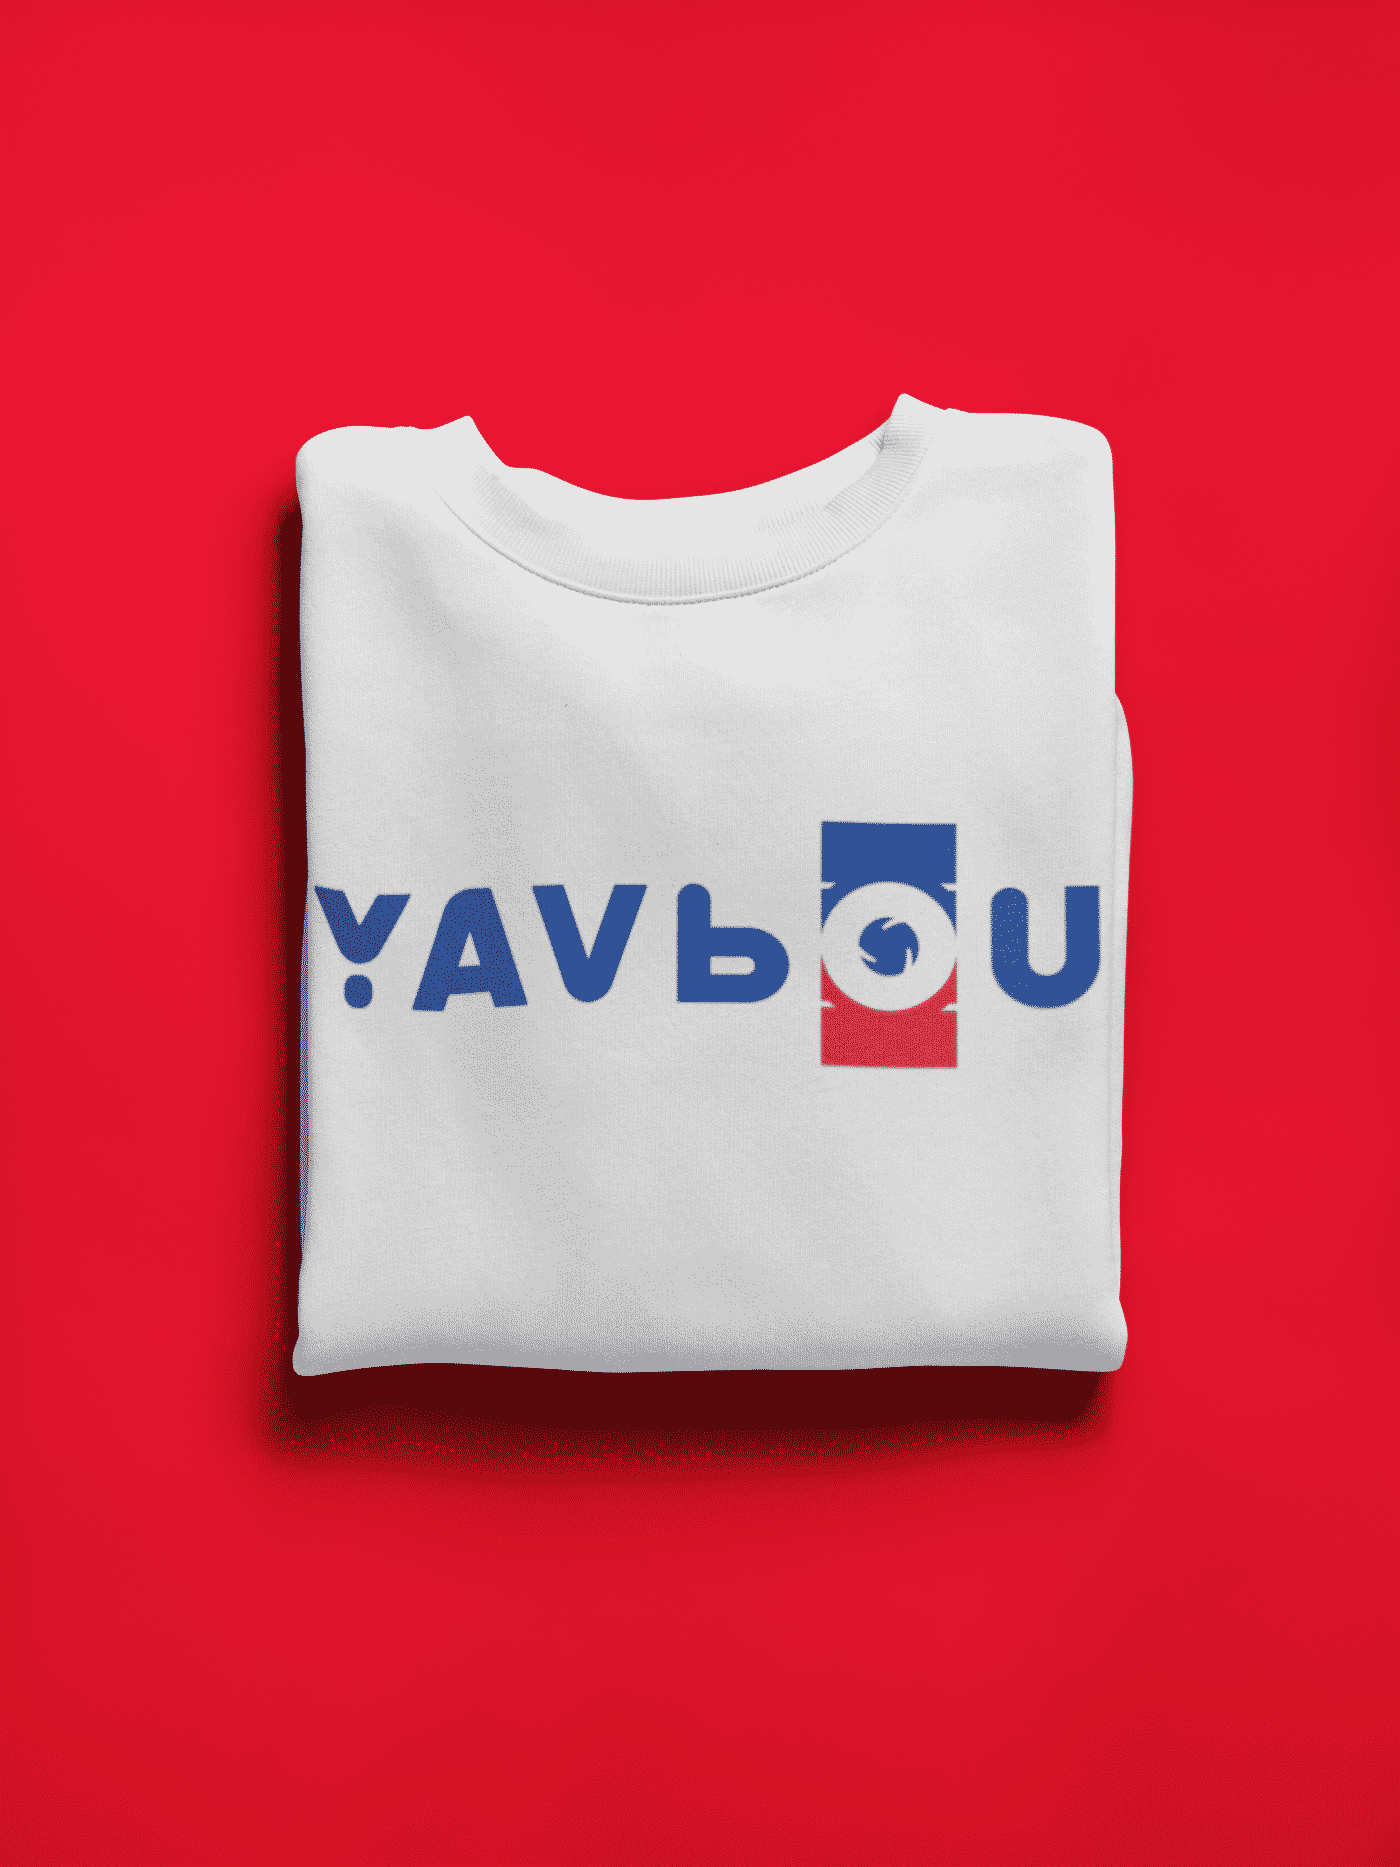 nouvelle-collection-team-yavbou-2019-sportisgood-direct-volley-volleypack-7